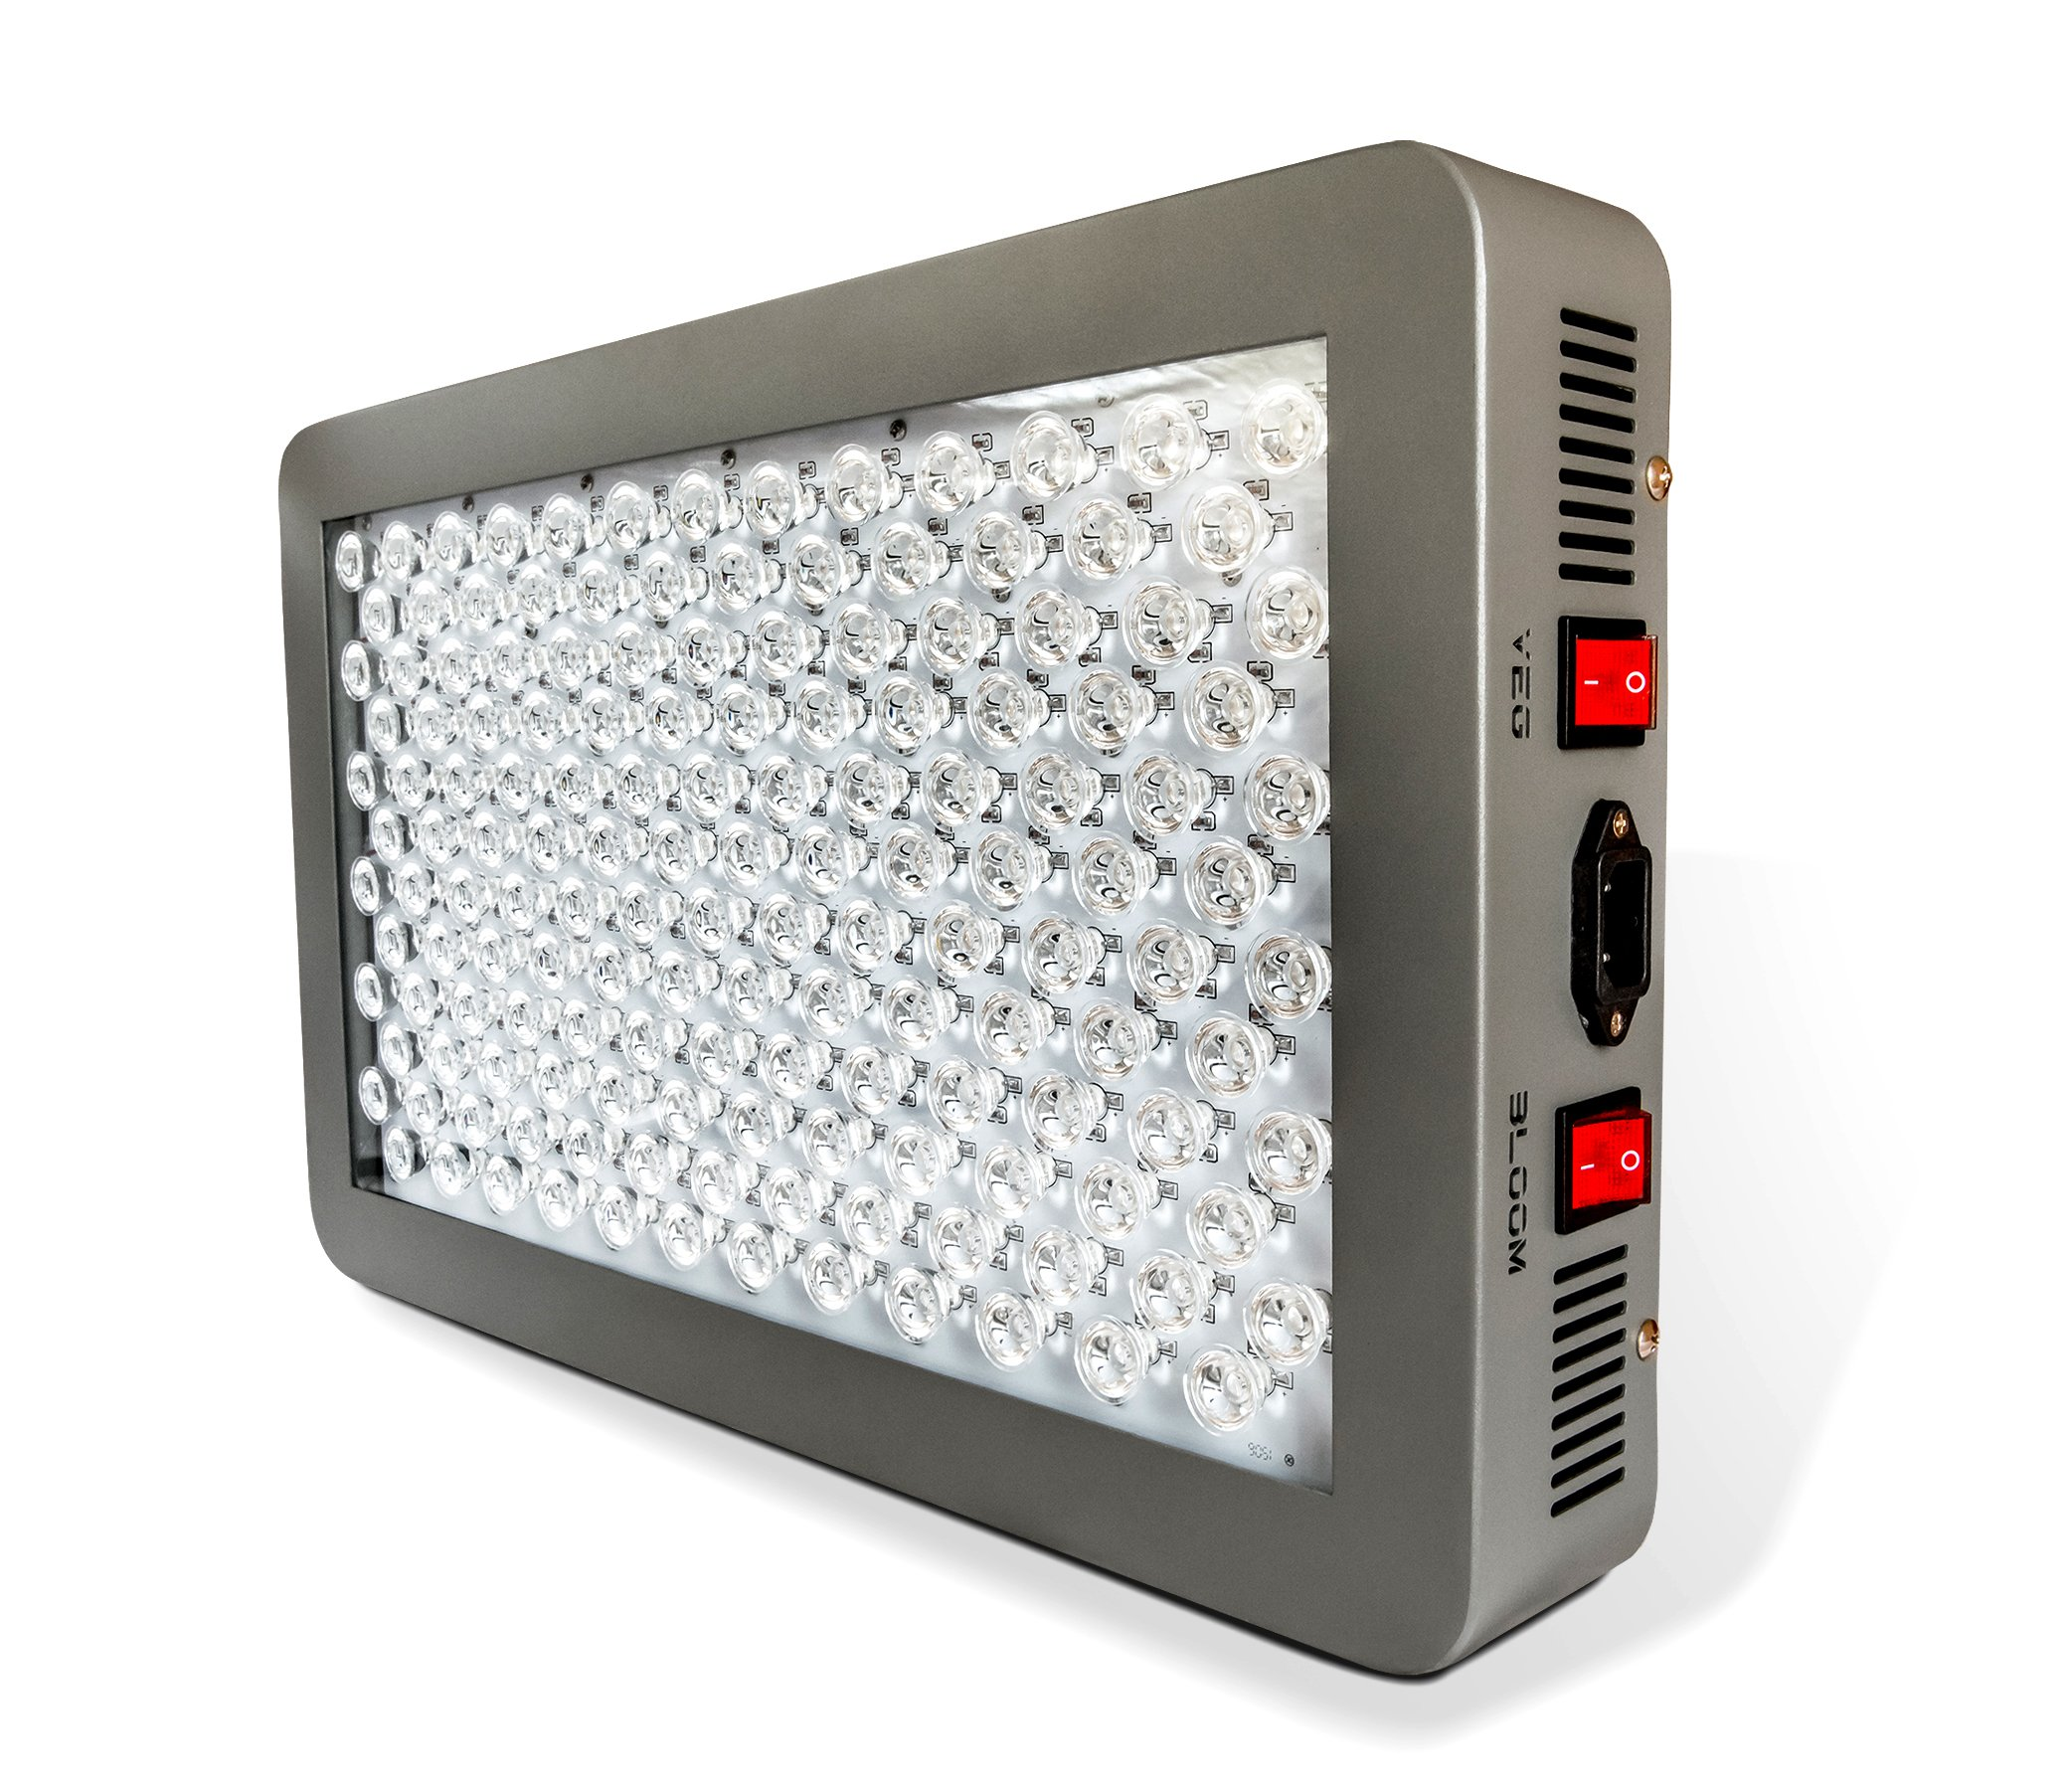 Advanced Platinum Series P450 450w 12-band LED Grow Light - DUAL VEG/FLOWER FULL SPECTRUM by PlatinumLED Grow Lights